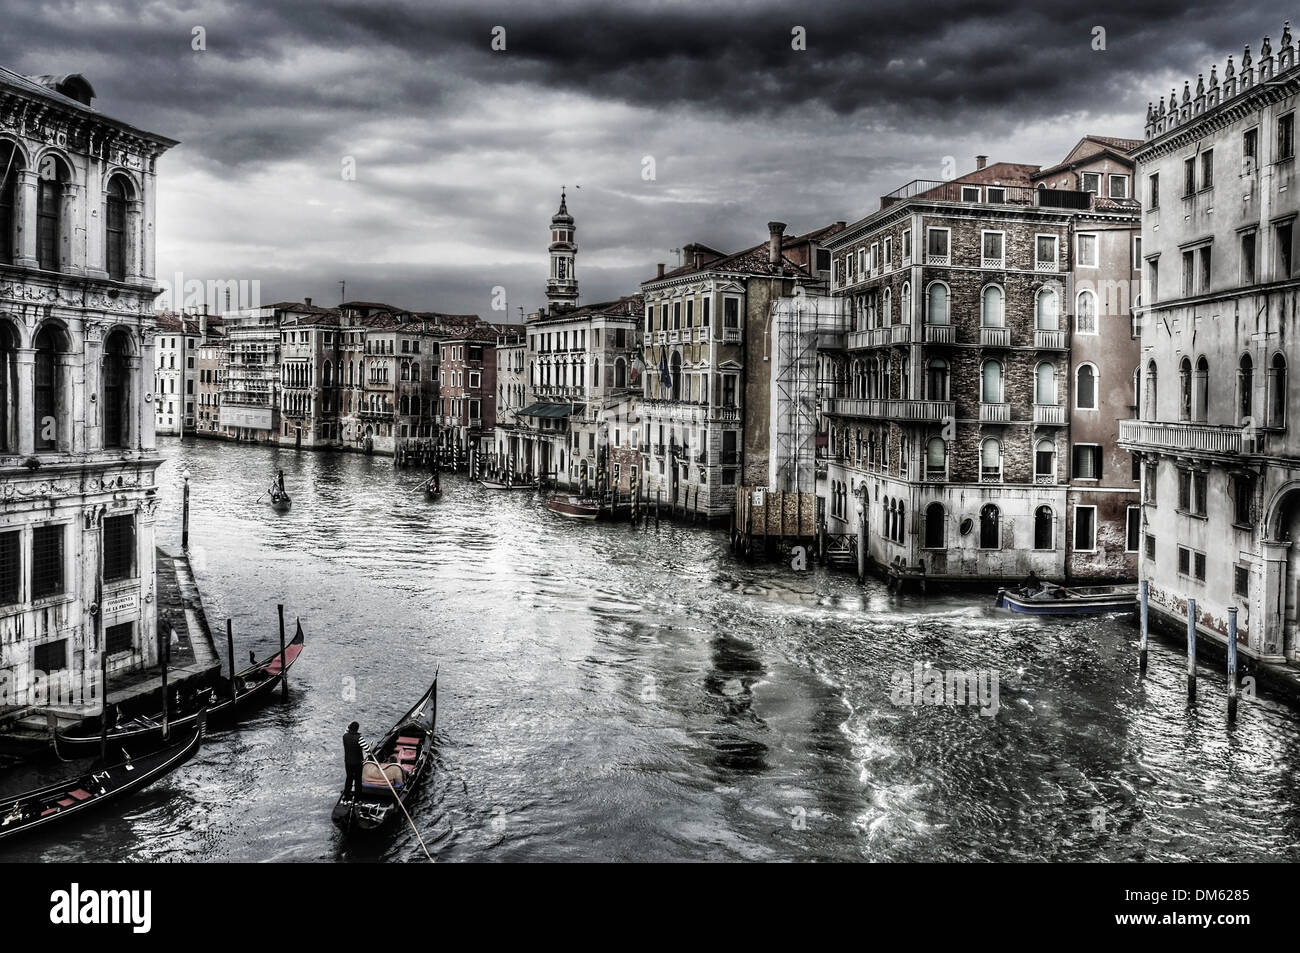 a view of the Grand Canal in Venice, Italy - Stock Image